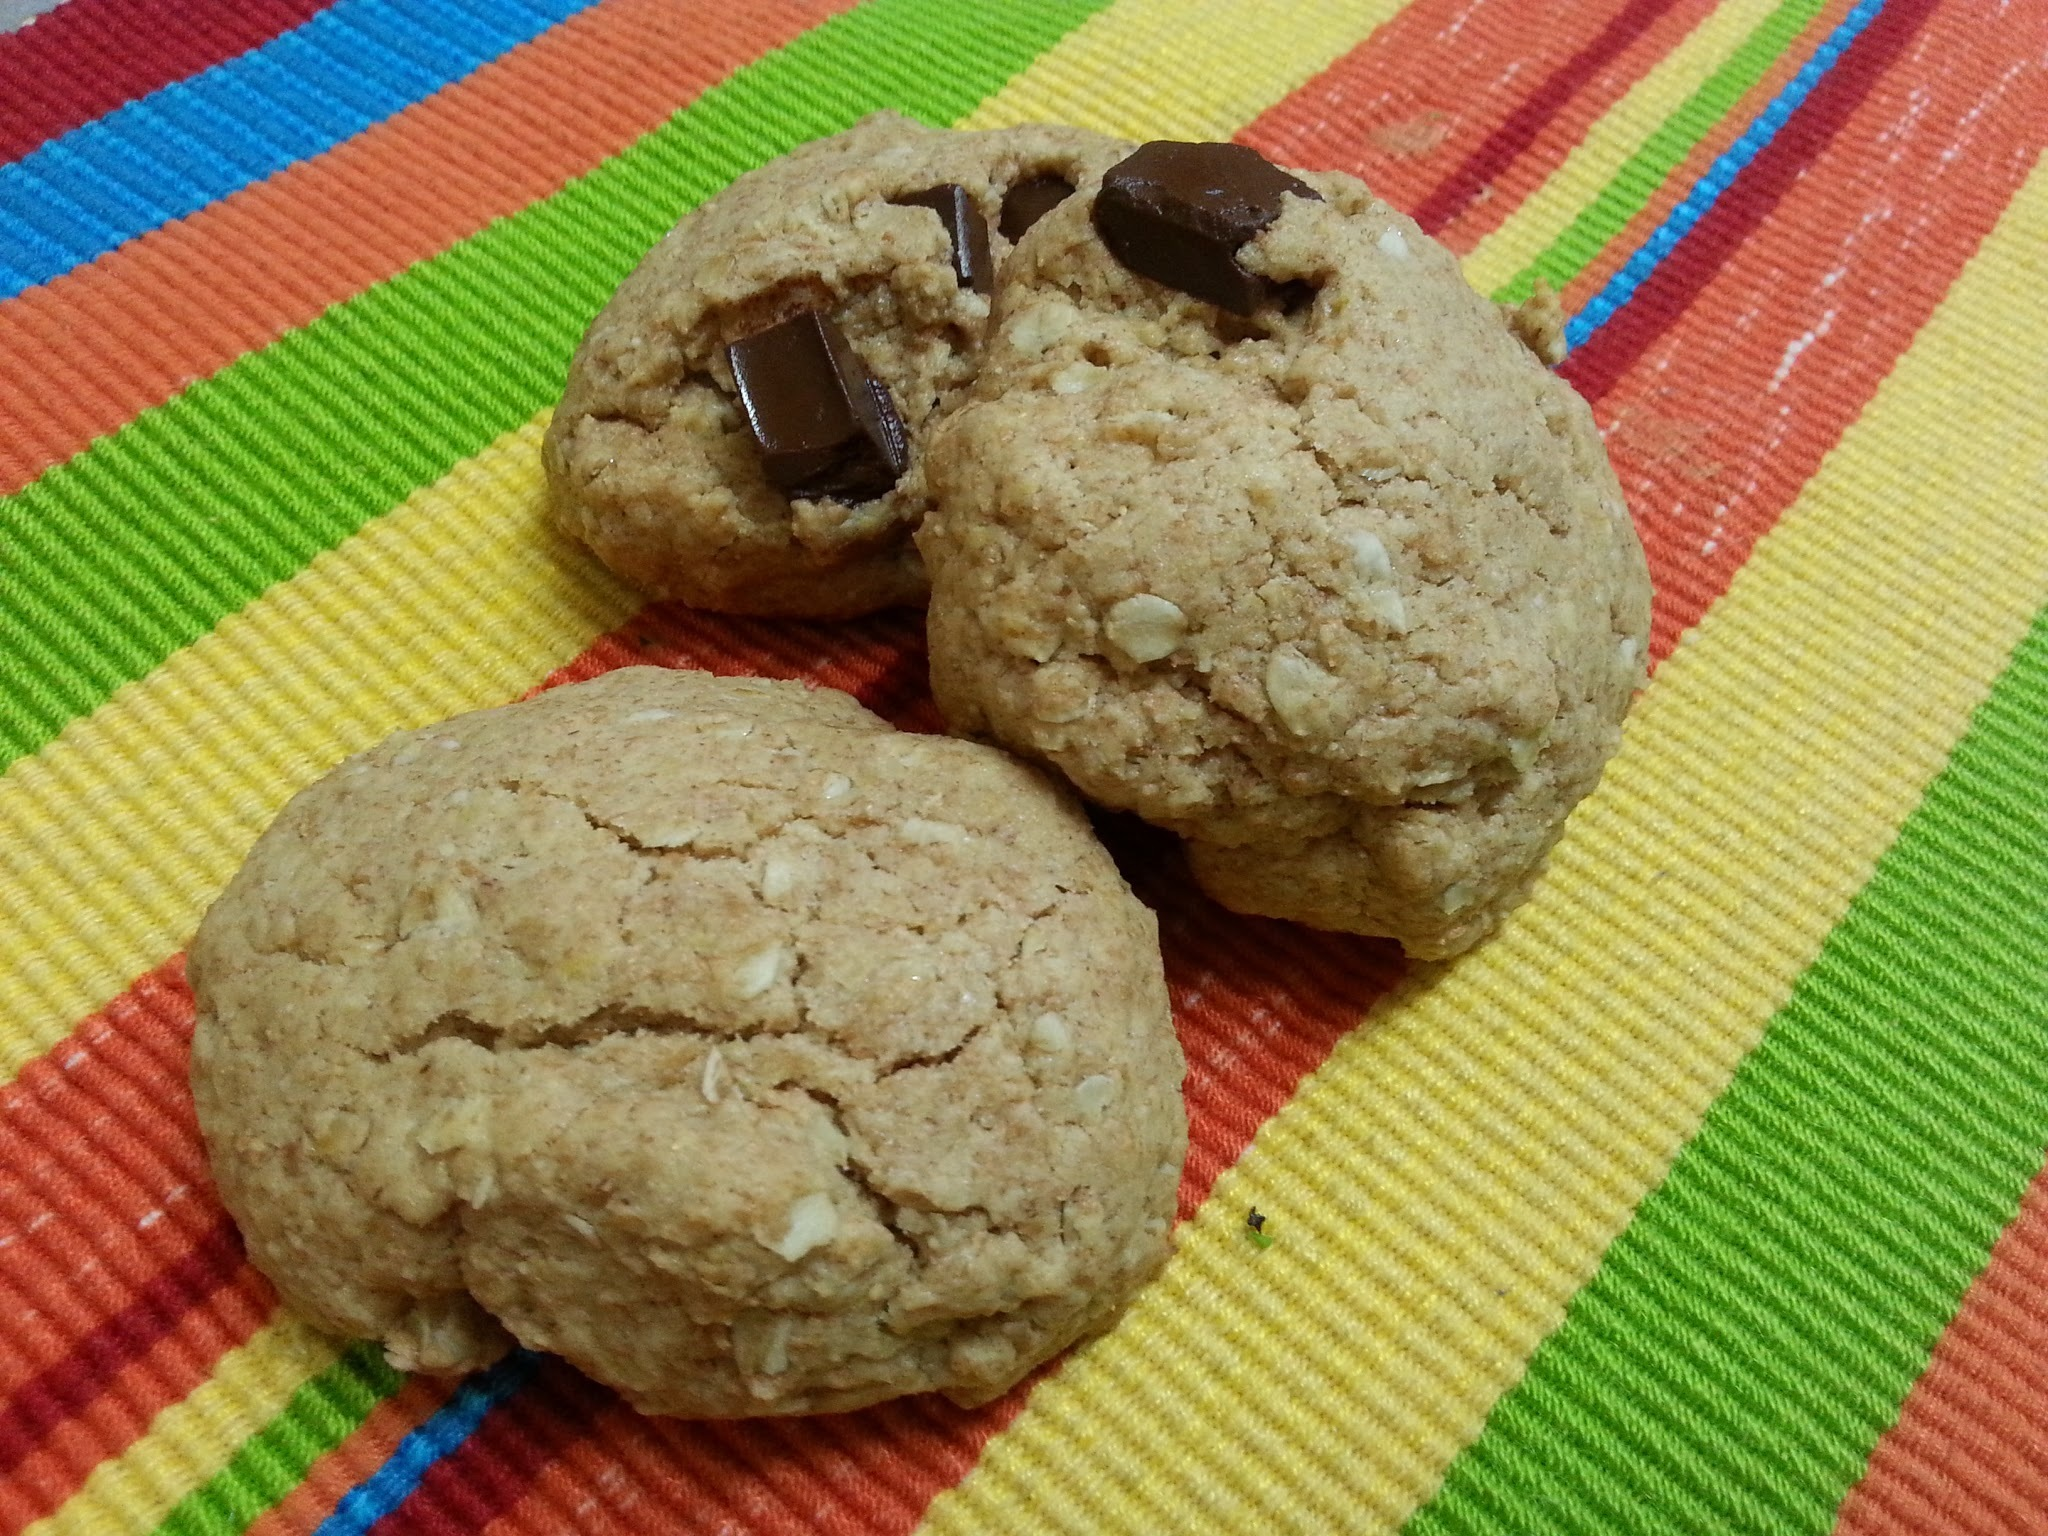 Galletas integrales de avena, mantequilla de maní y chocolate